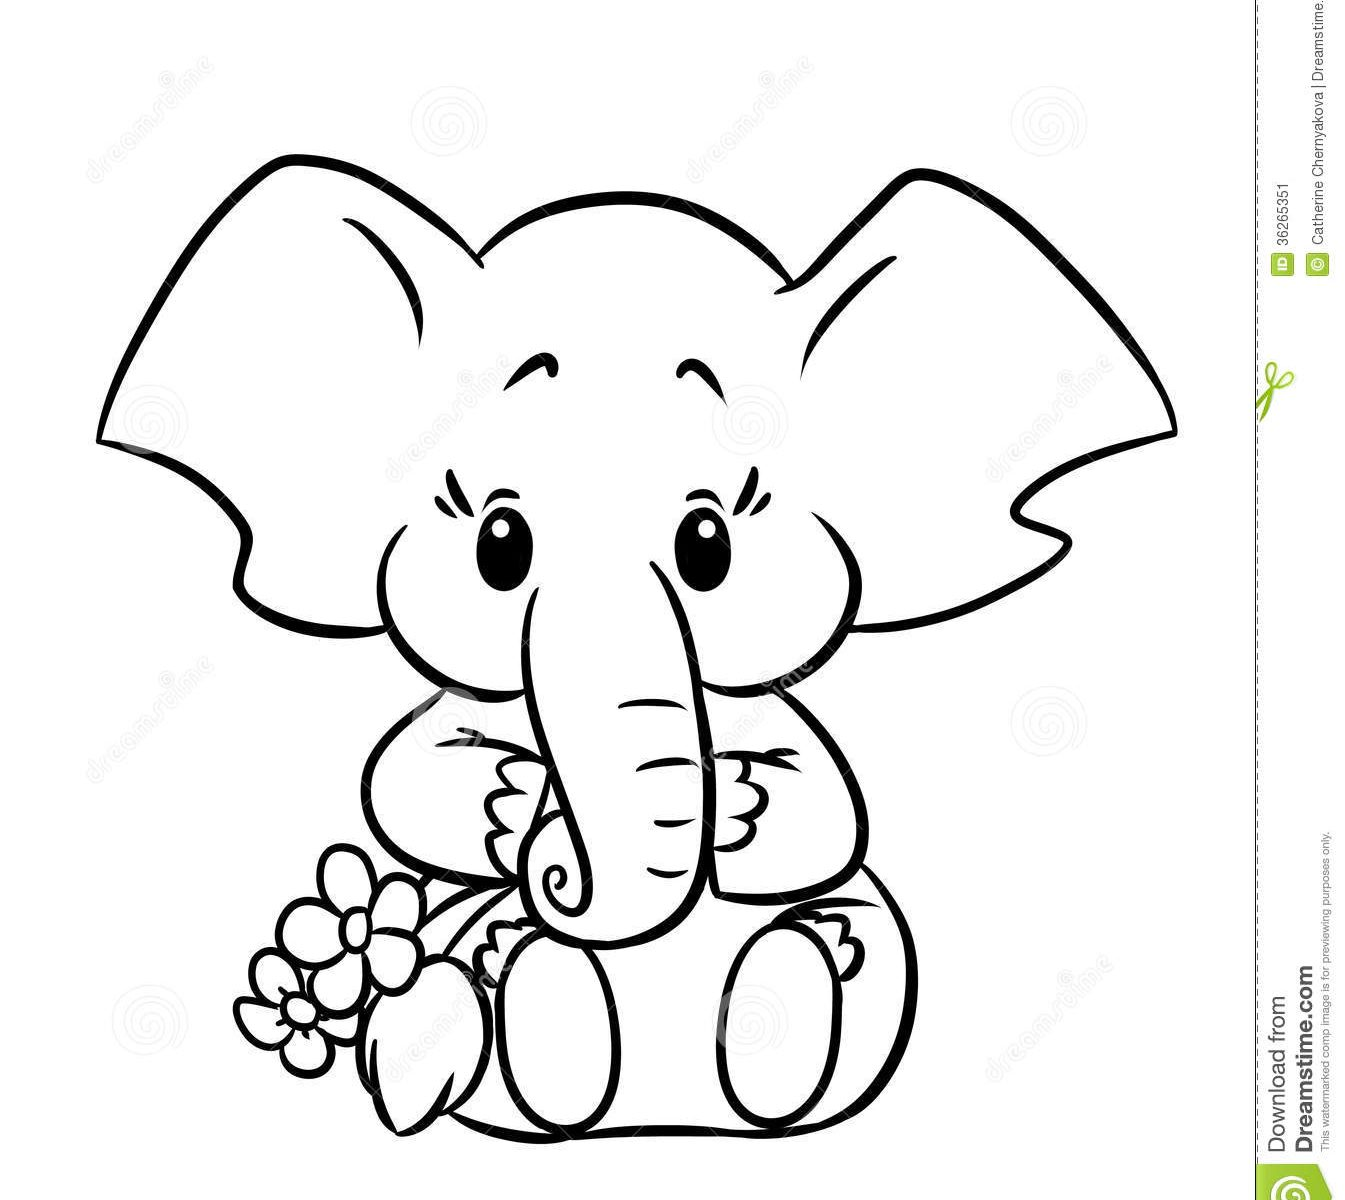 1345x1200 Elephant Coloring Page Image To Print Free Animals Pages For